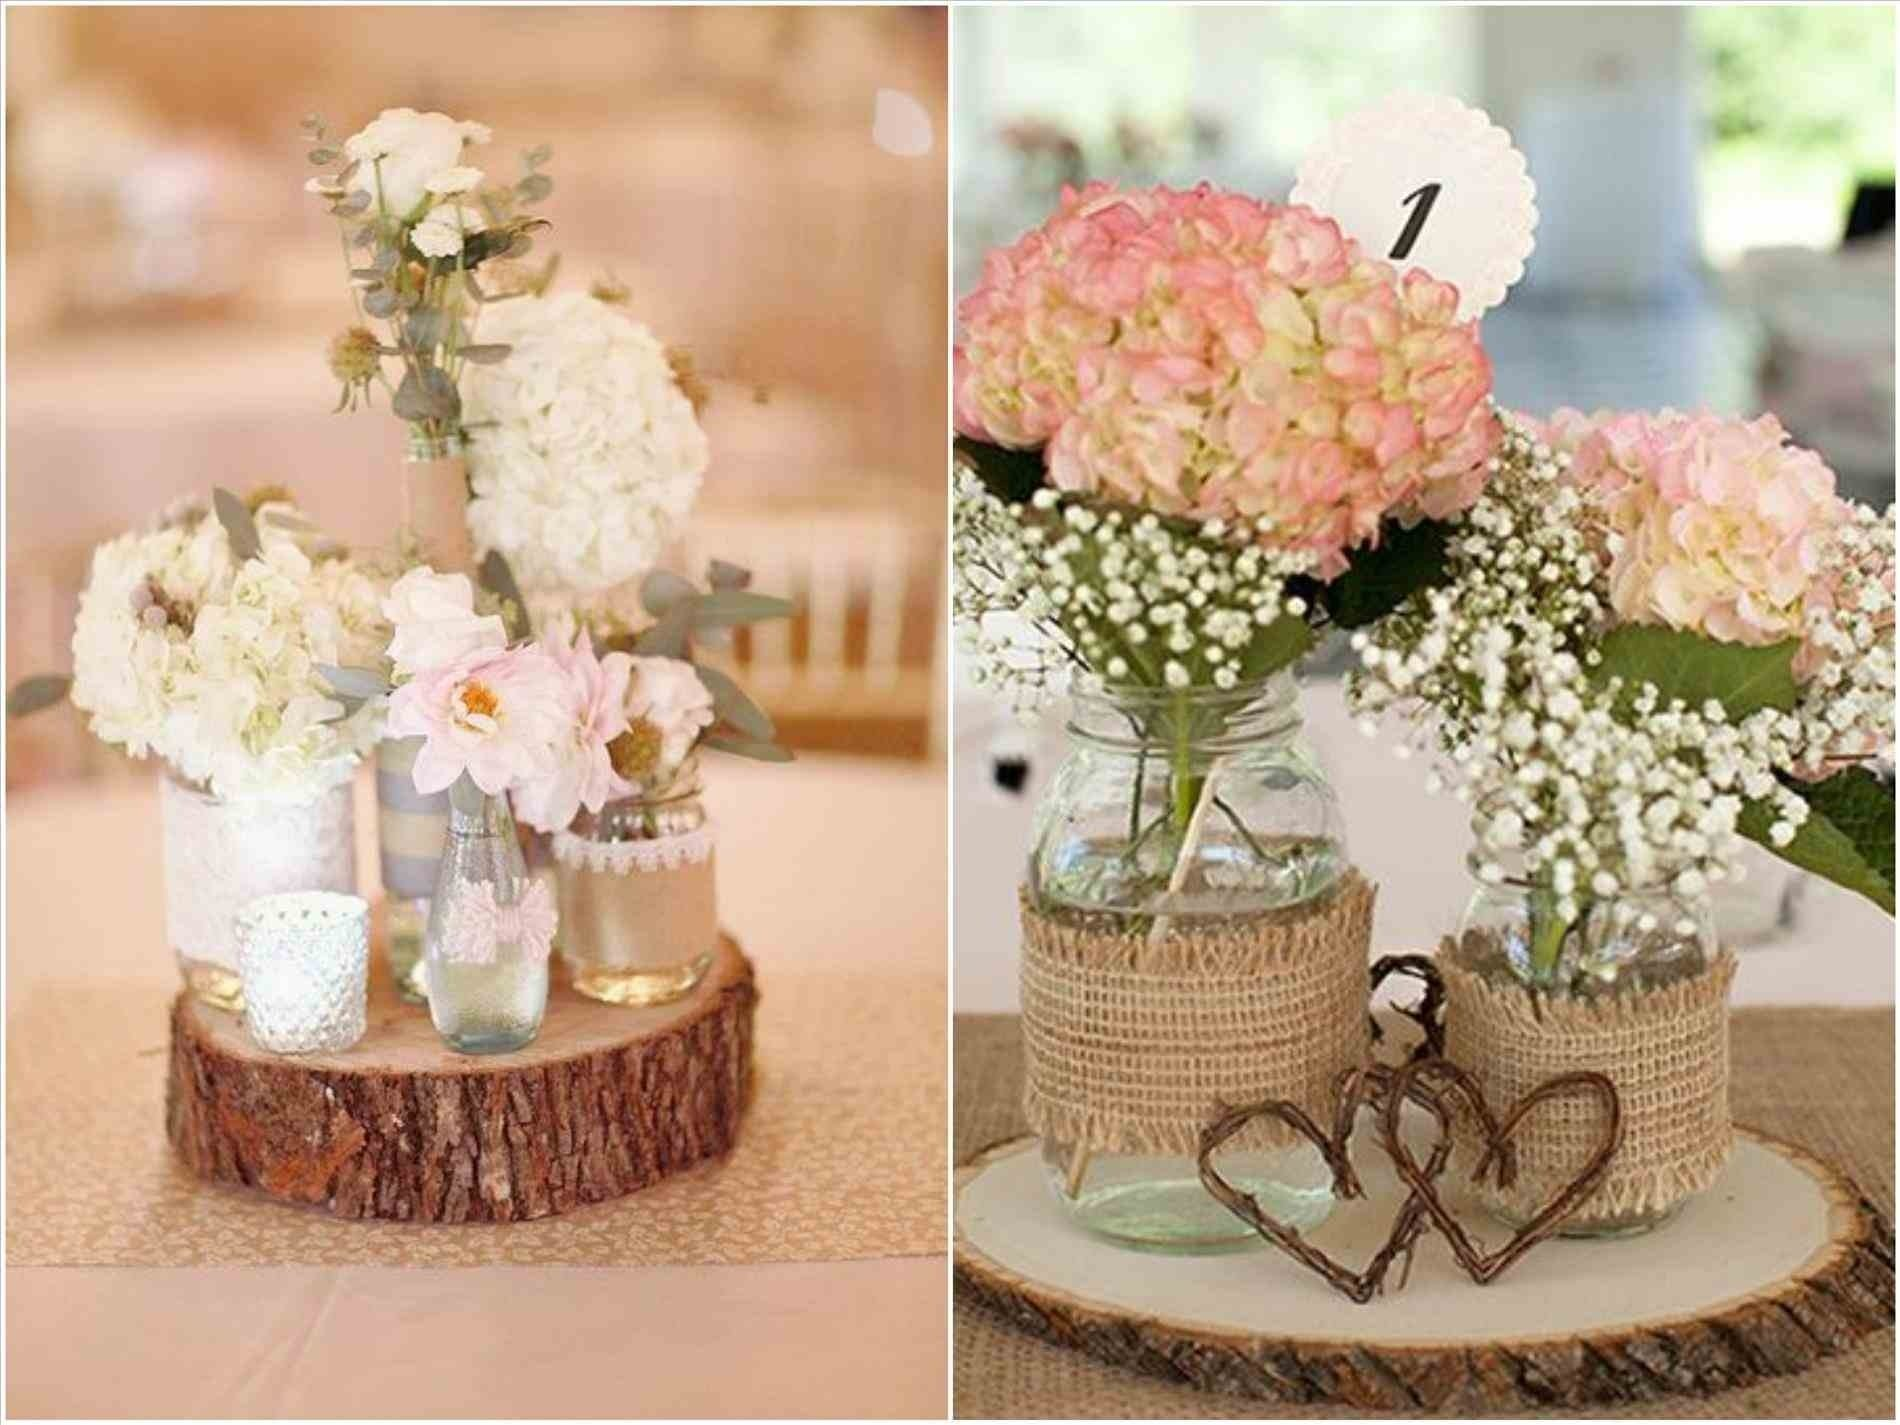 10 Perfect Wedding Ideas On A Tight Budget diy wedding ideas for a tight budget wedding ideas decor 2020